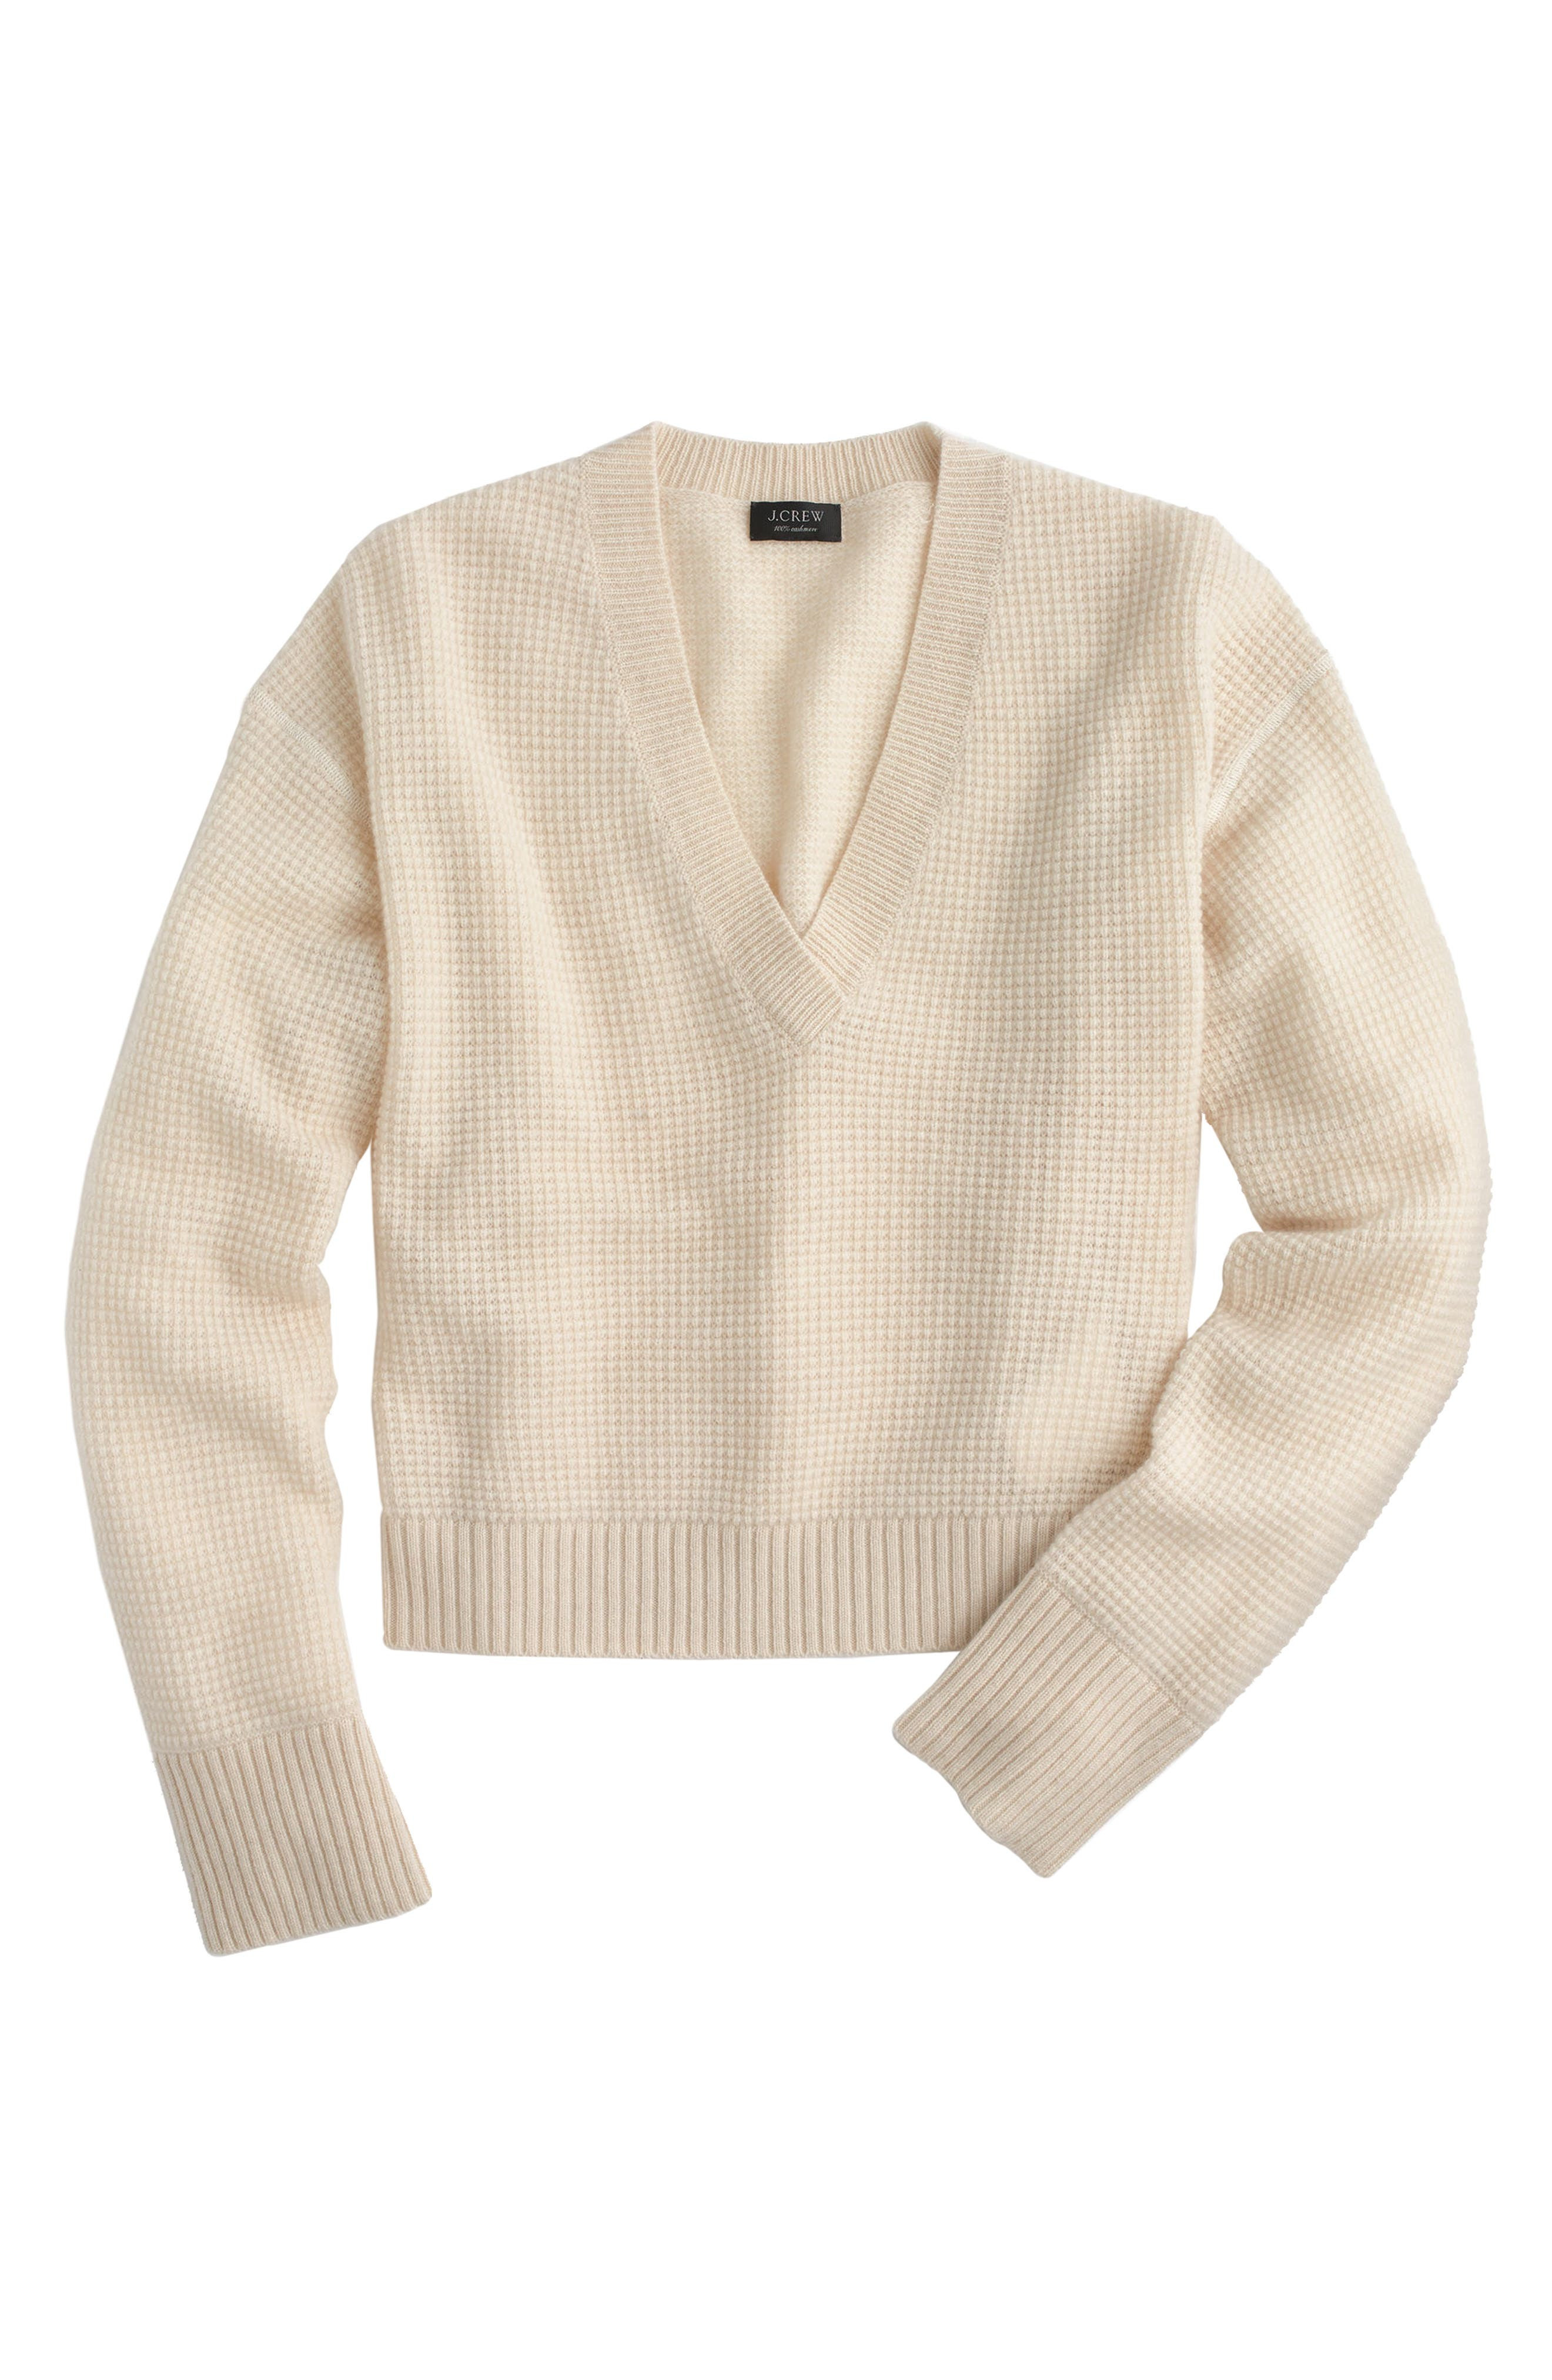 J.Crew V-Neck Crop Thermal Cashmere Sweater